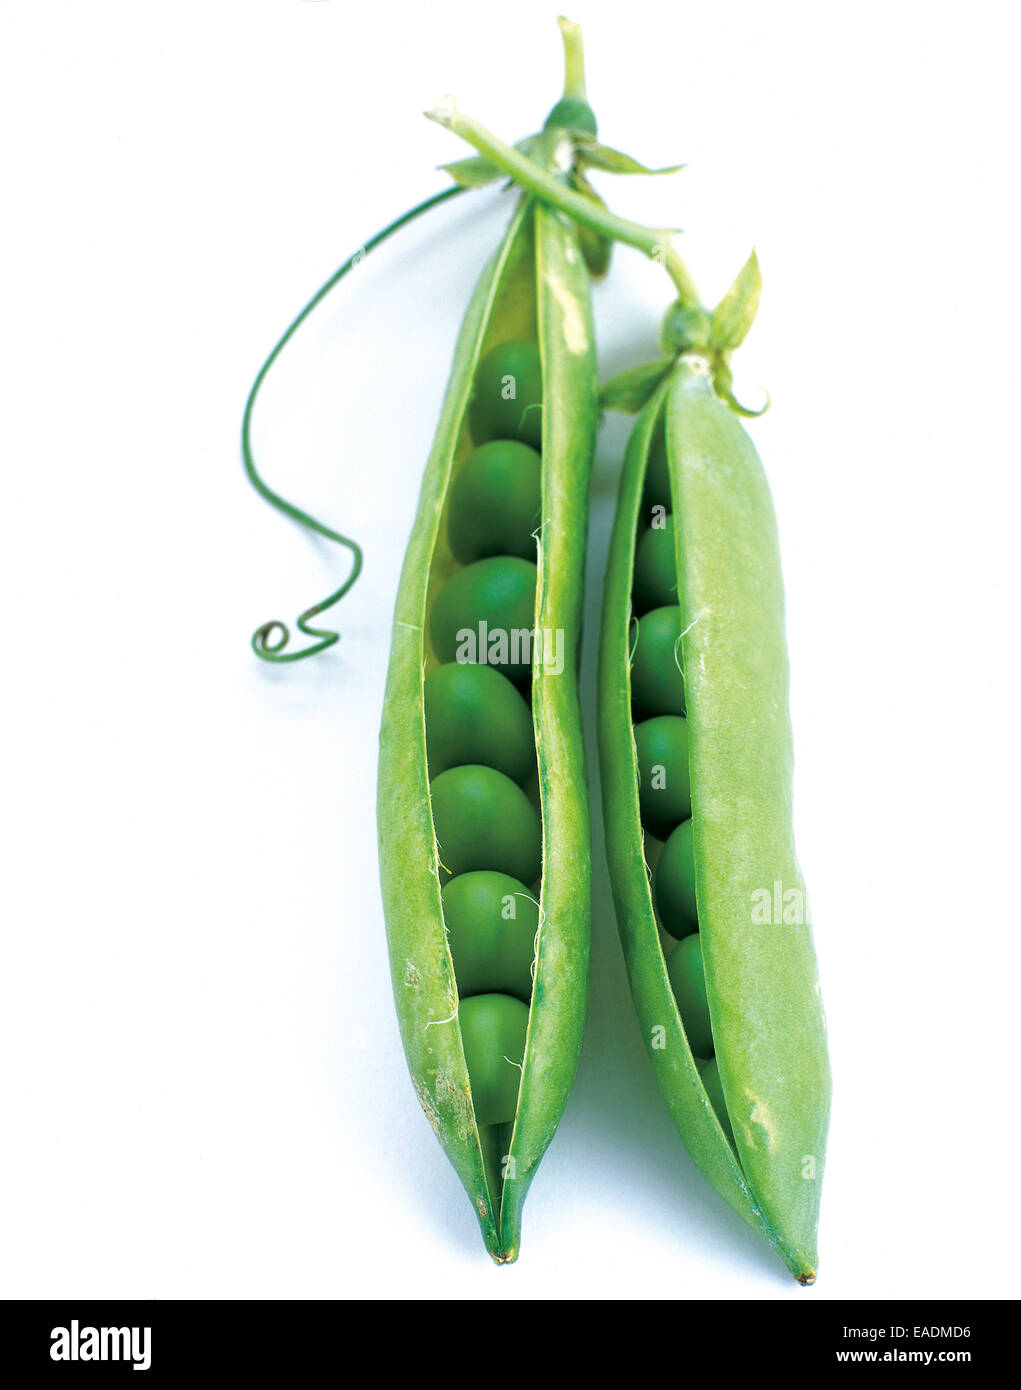 peas in their pods - Stock Image